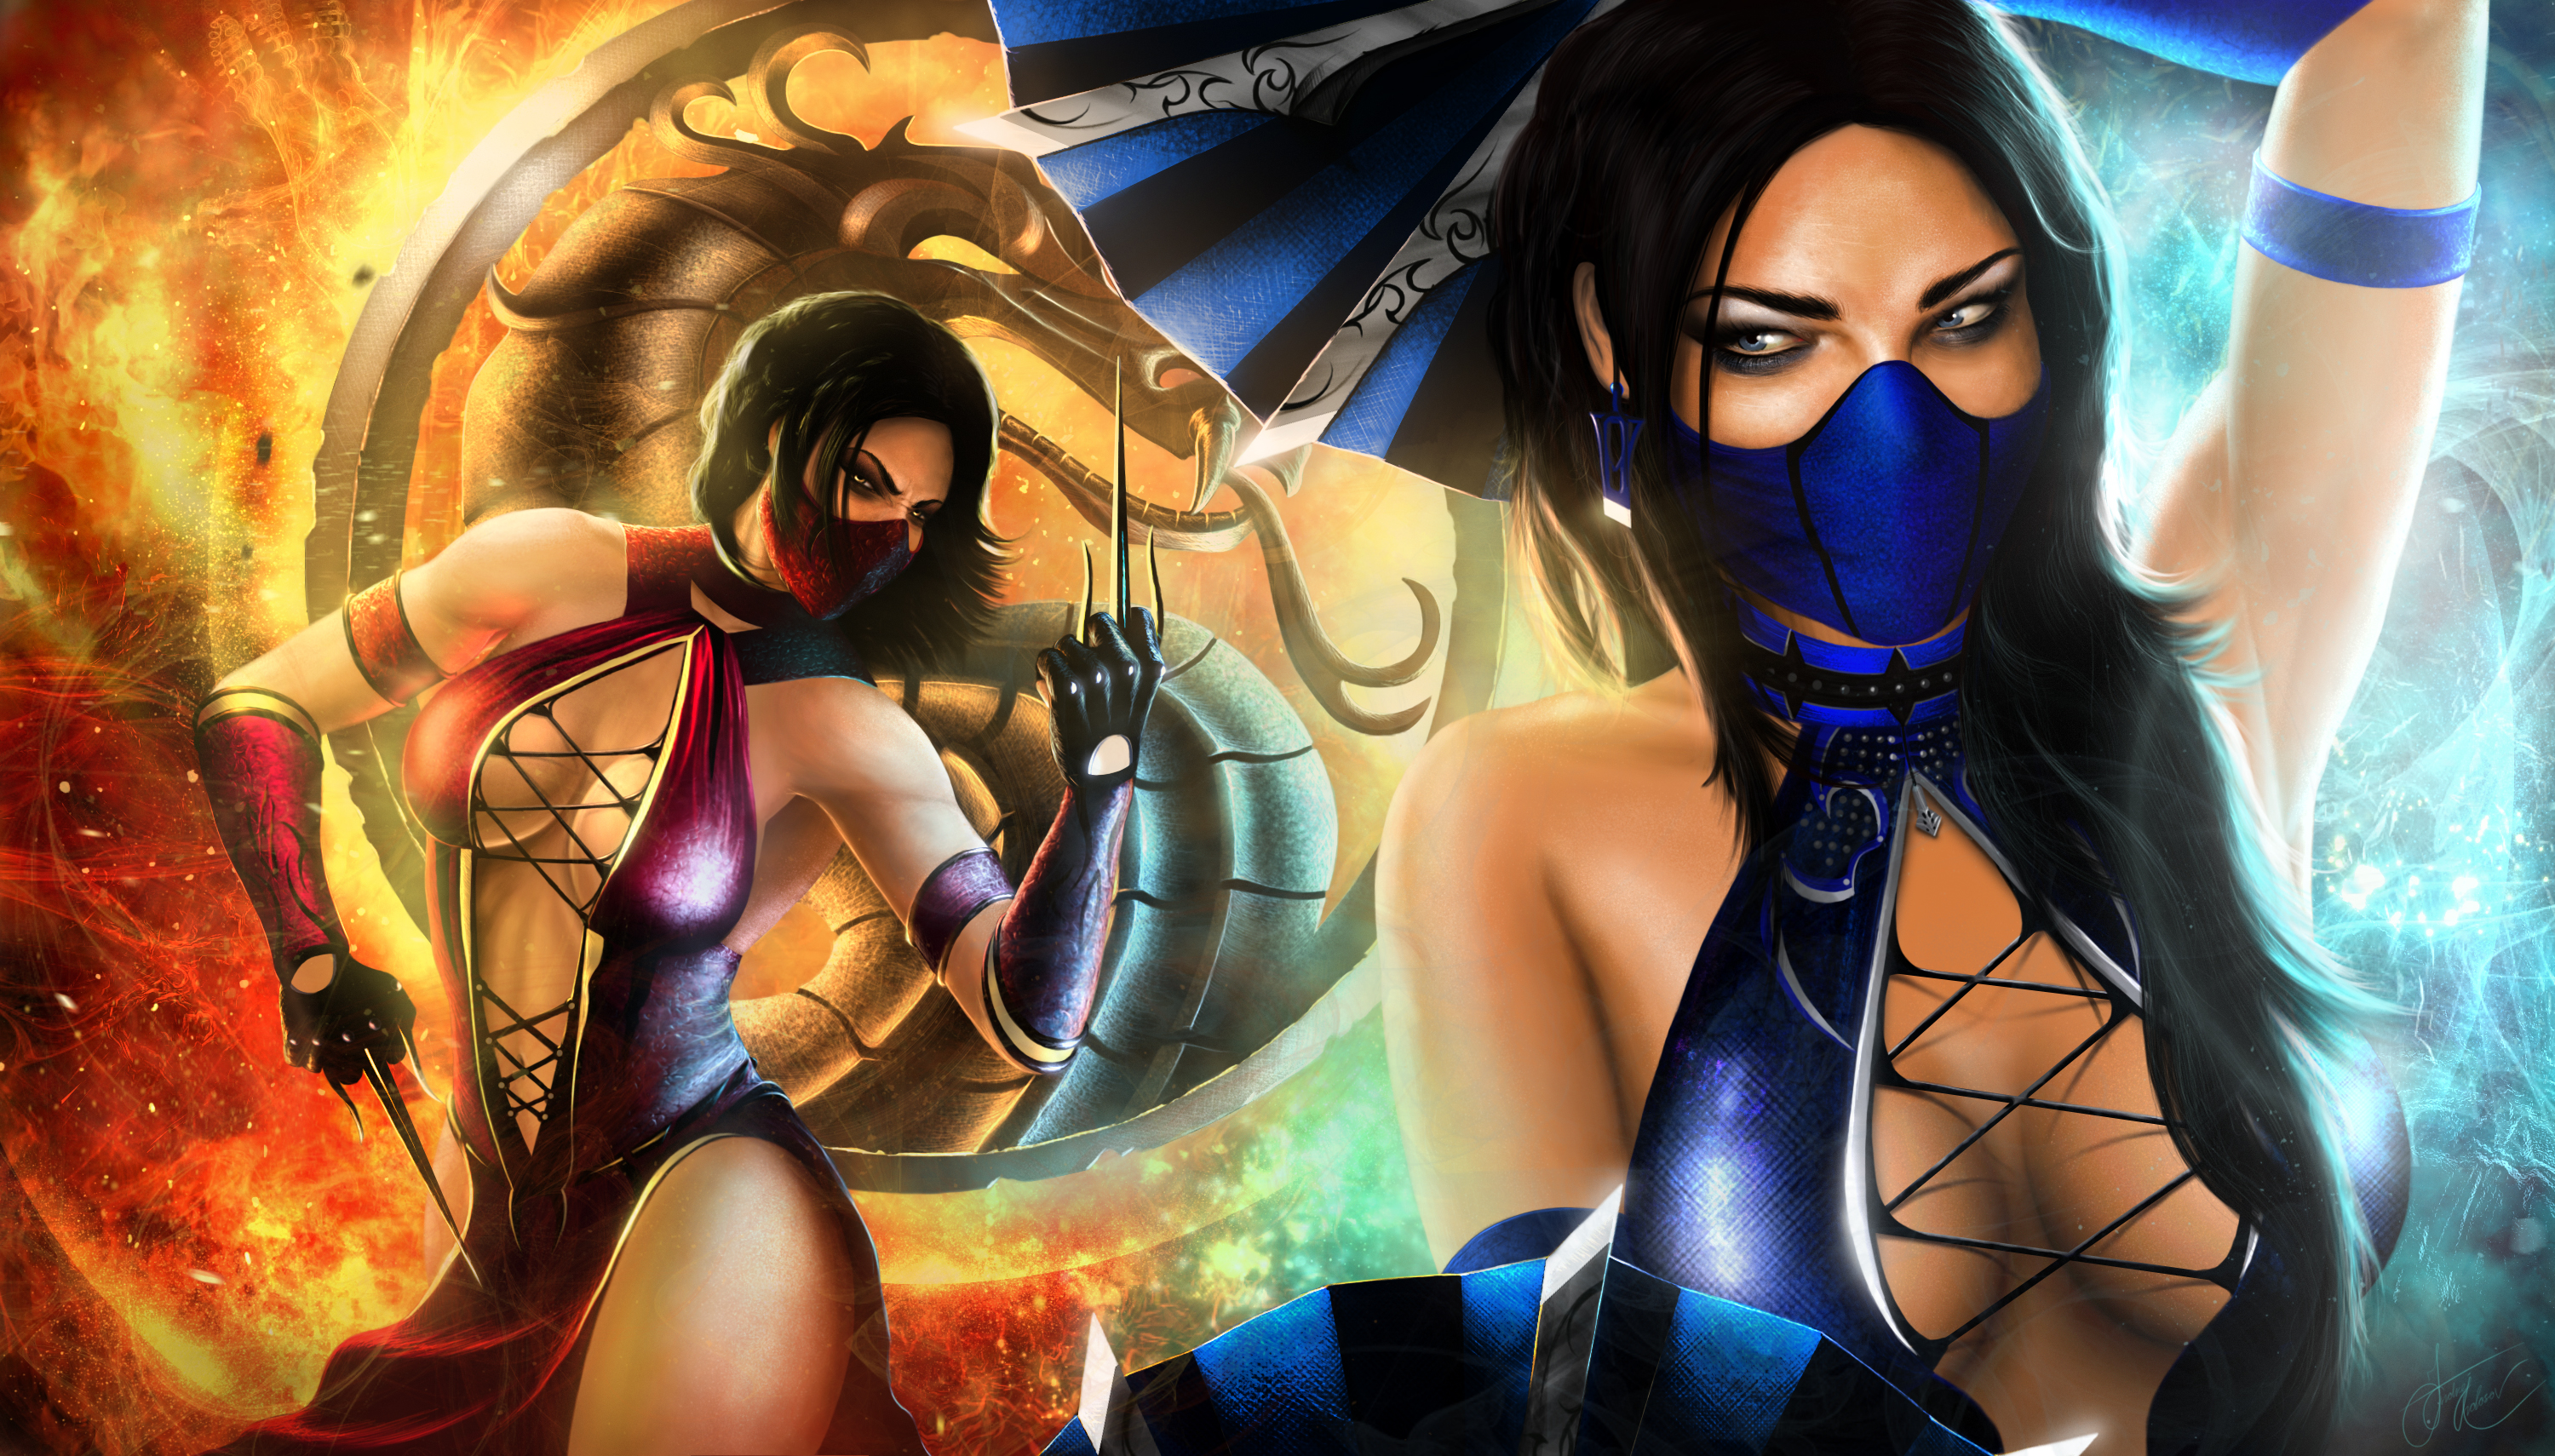 Mileena VS Kitana HD Wallpaper